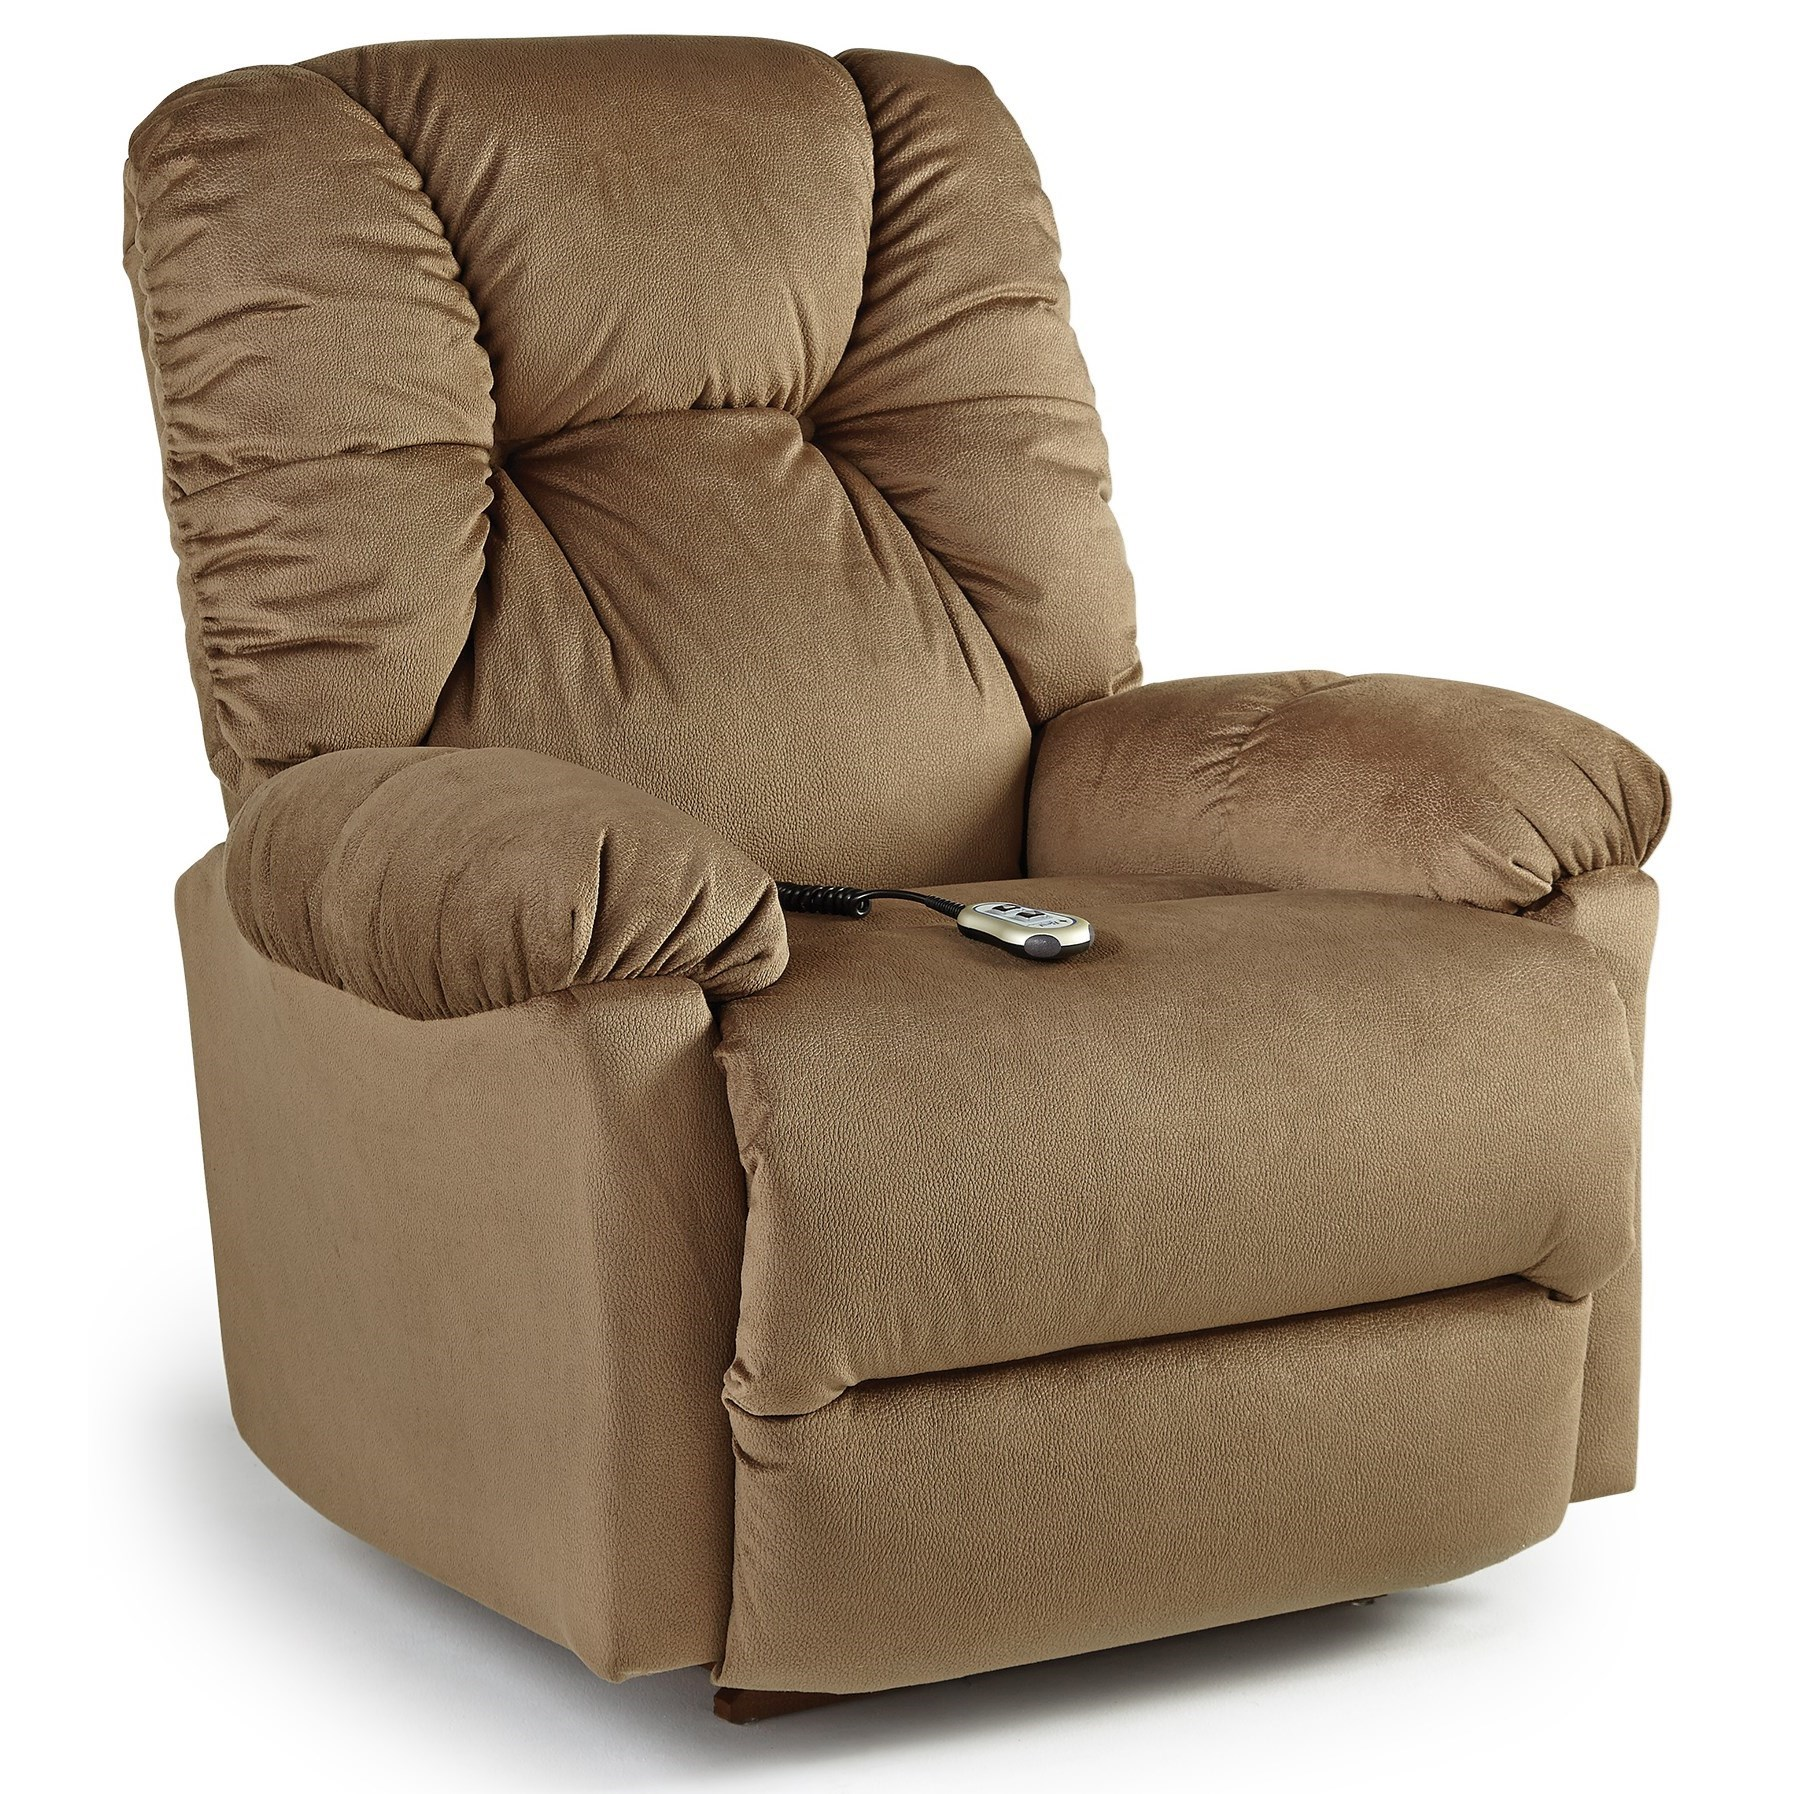 Best Home Furnishings Recliners - Medium Romulus Power Lift Recliner - Item Number: 9MW51